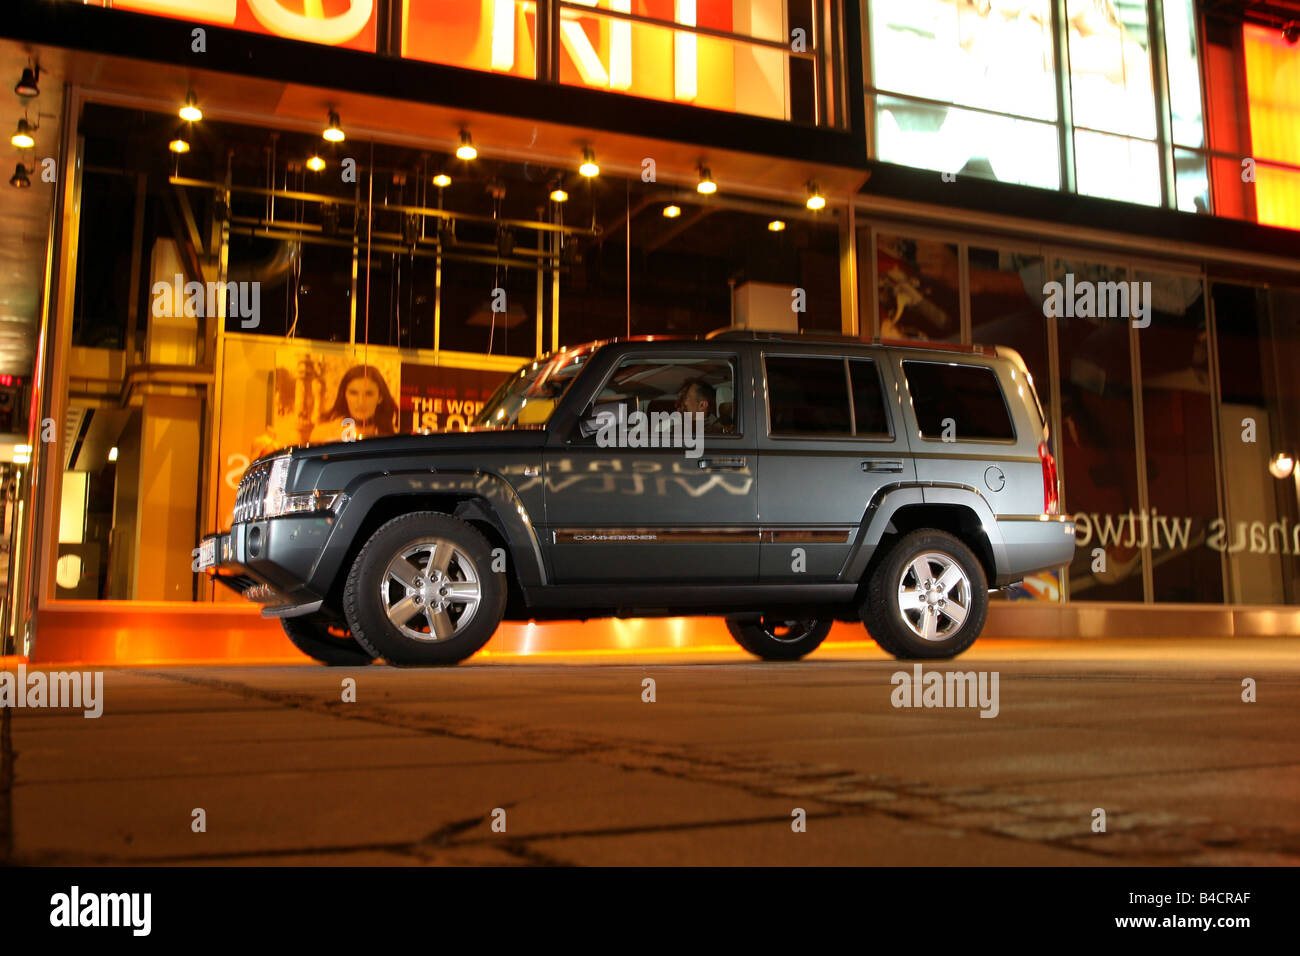 Jeep Commander 3.0 CRD, model year 2006-, silver, standing, upholding, side view, City, night shot, Evening - Stock Image